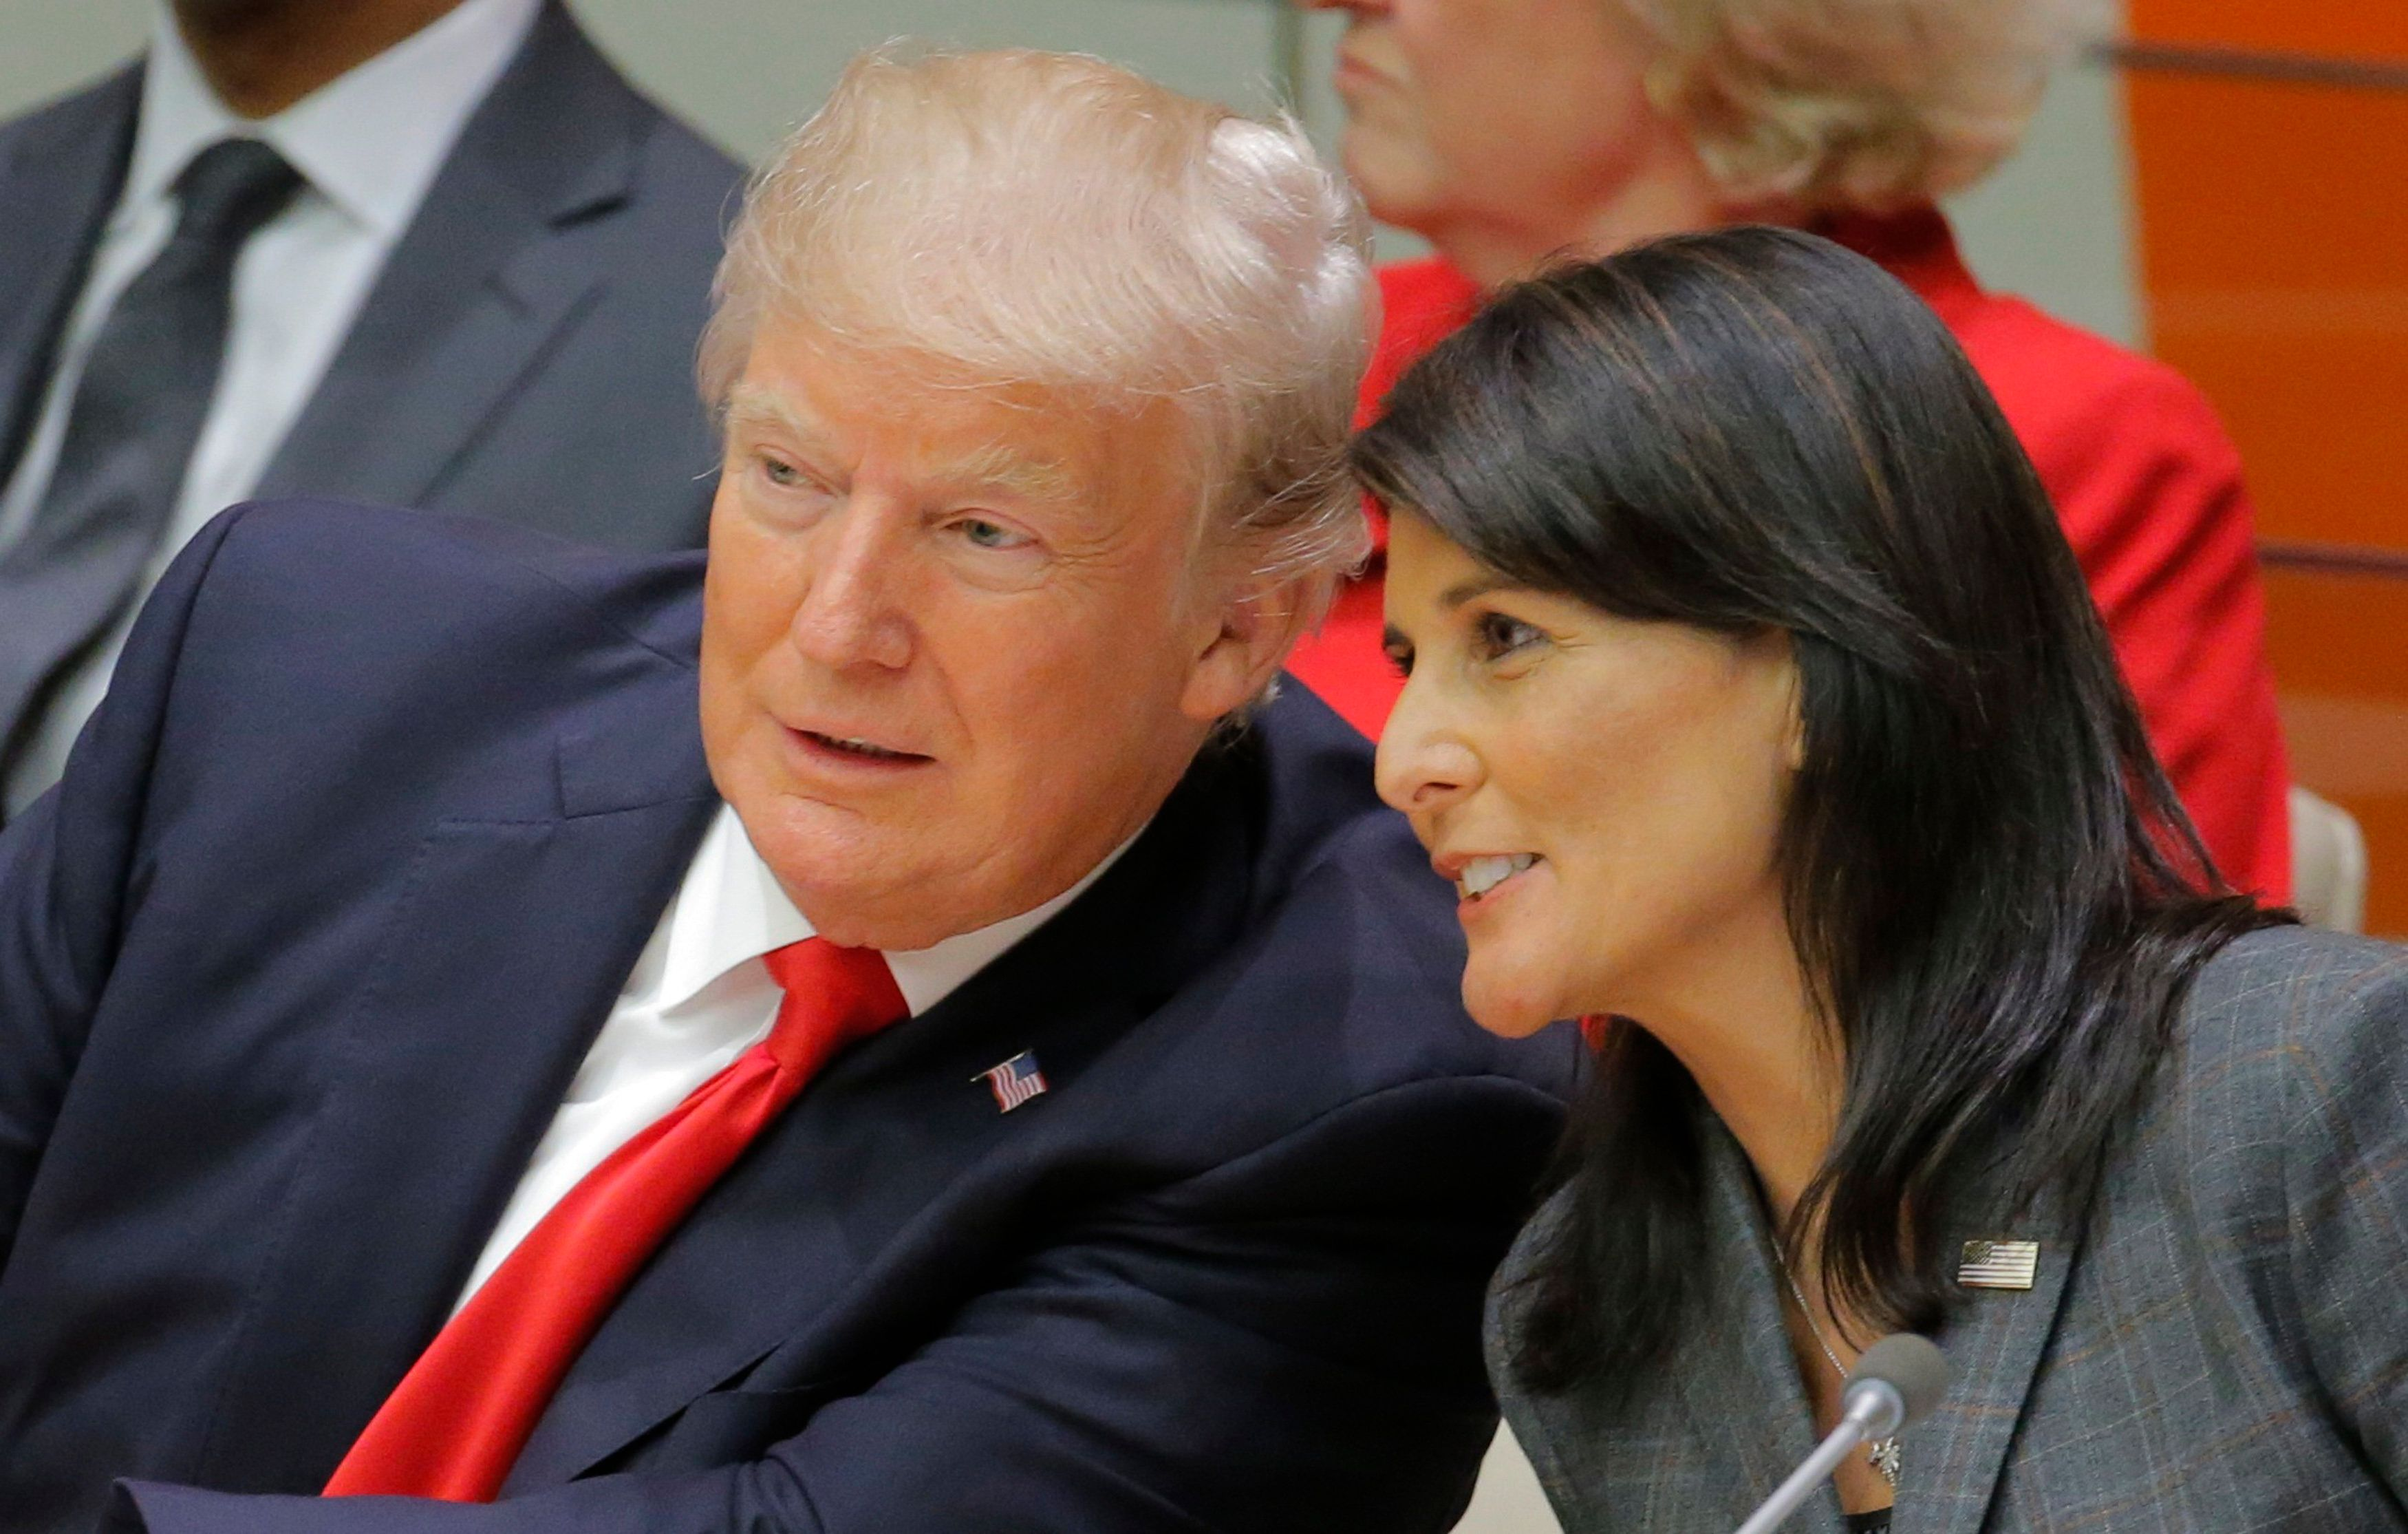 U.S. President Donald Trump talks with U.S. Ambassador to the U.N. Nikki Haley as they attend a session on reforming the United Nations at U.N. Headquarters in New York, U.S., September 18, 2017. REUTERS/Lucas Jackson